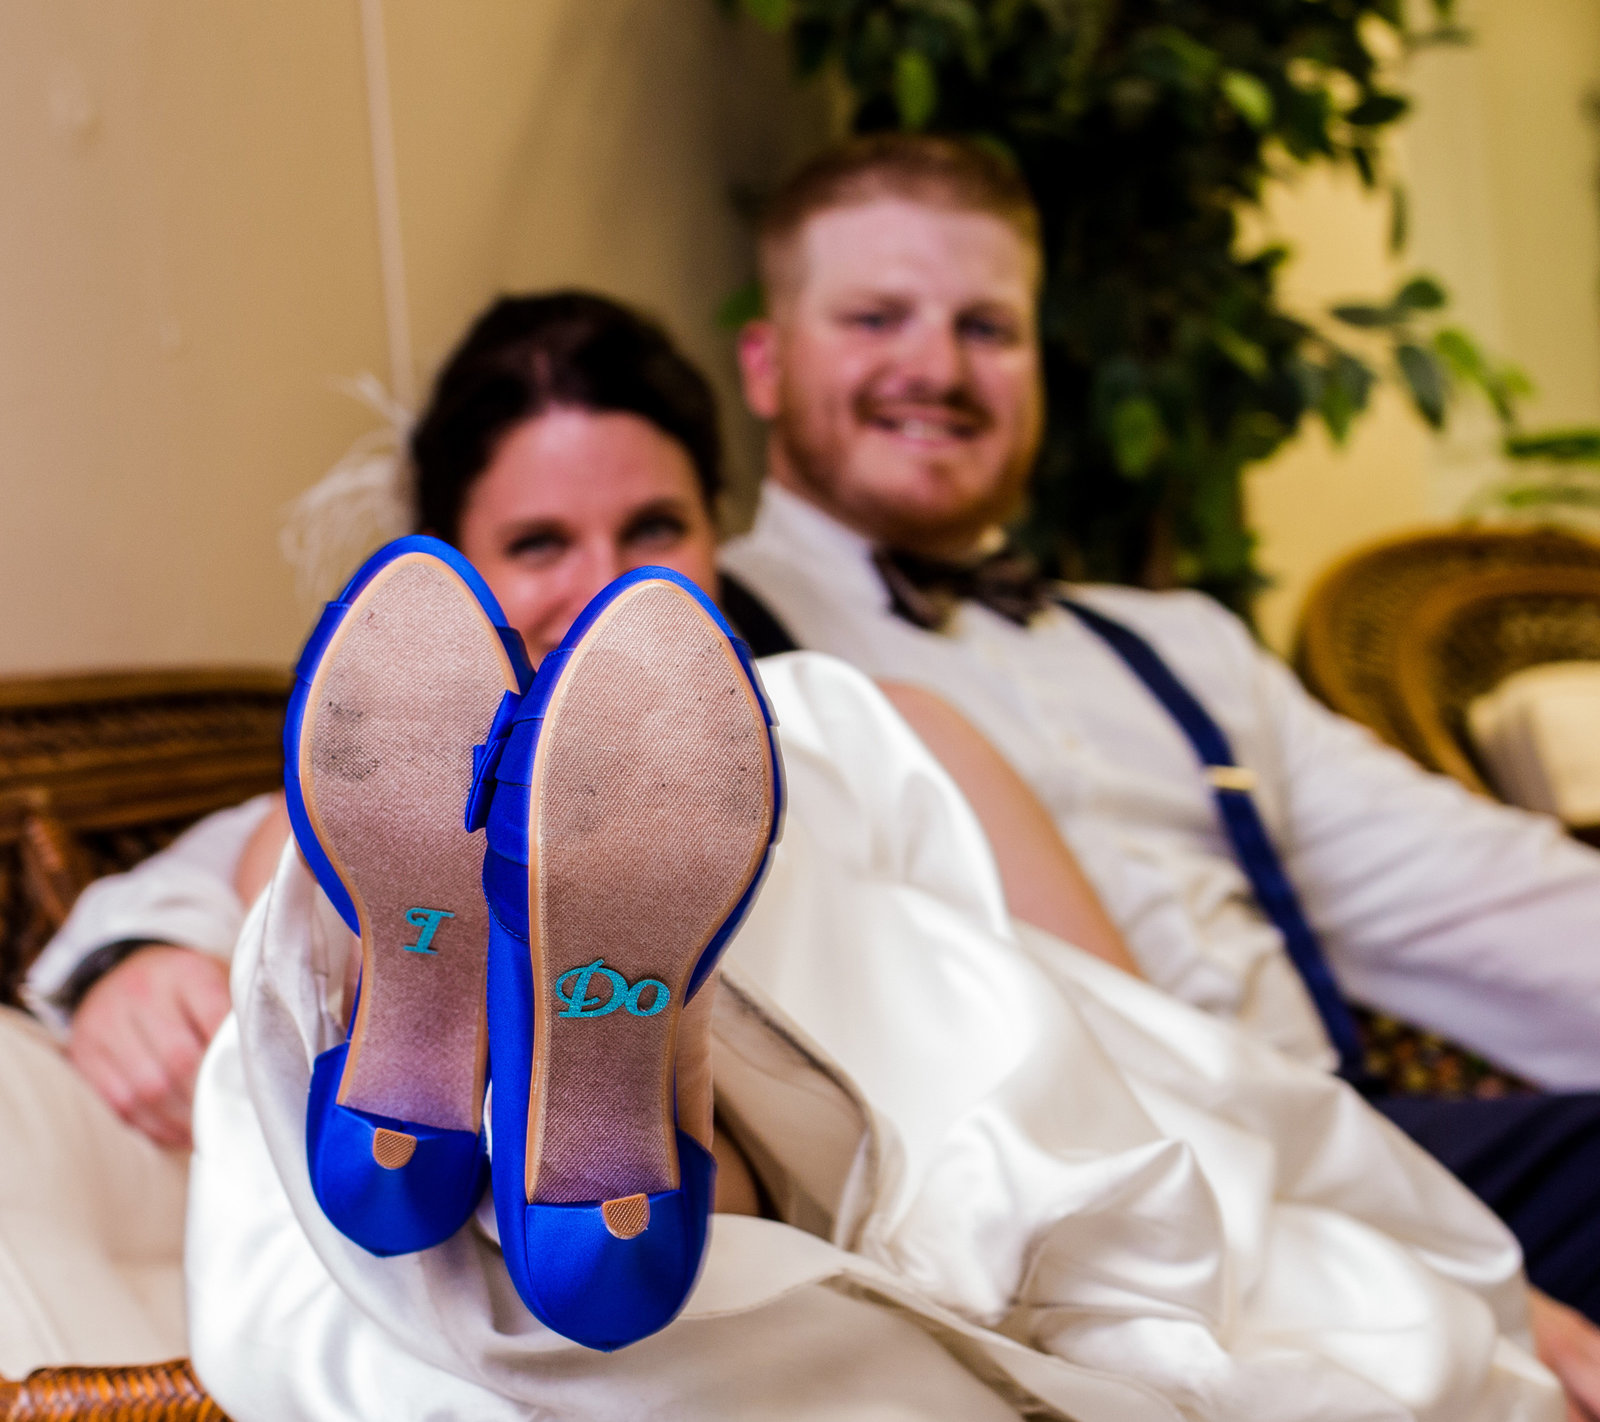 Bride and groom relax on a sofa during their Masonic Temple wedding reception in Erie, PA